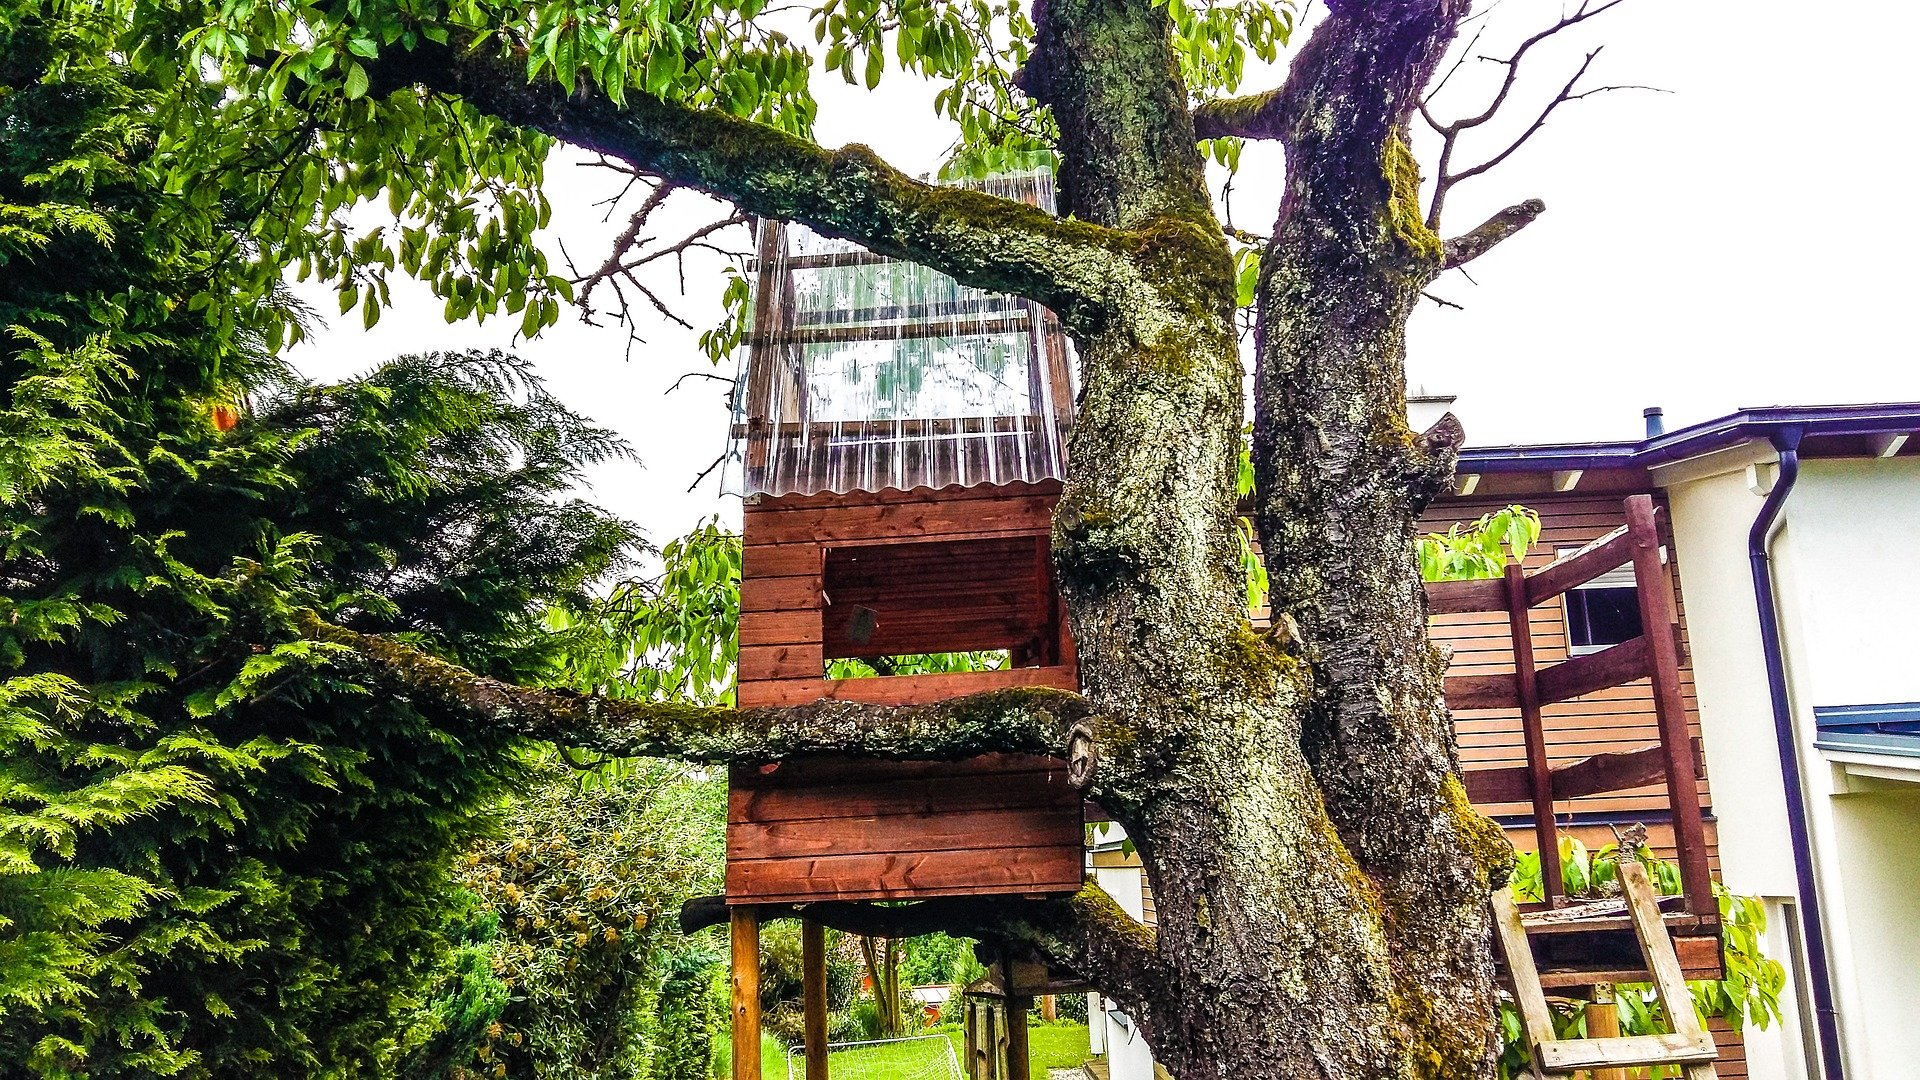 A treehouse in the middle of a backyard   Photo: Pixabay/Ben Faist